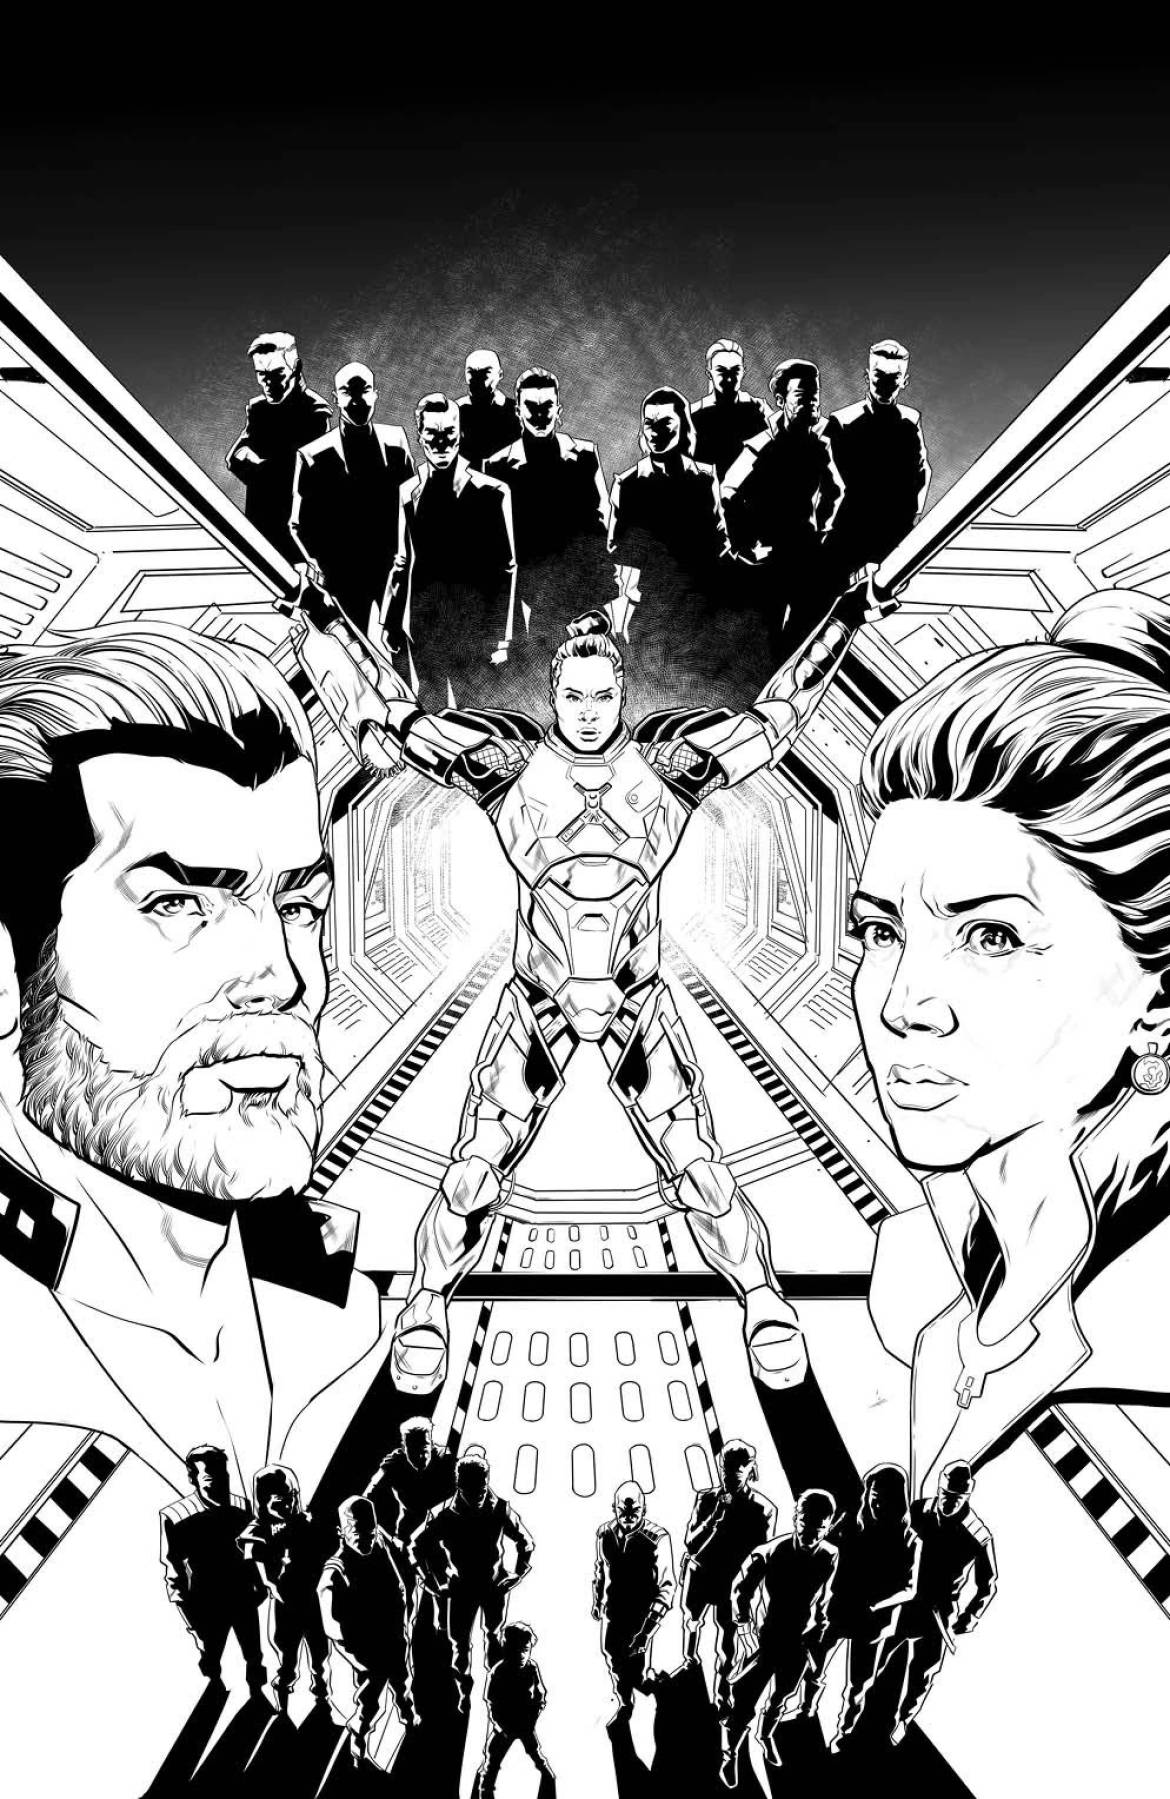 STL180018 ComicList Previews: THE EXPANSE #4 (OF 4)